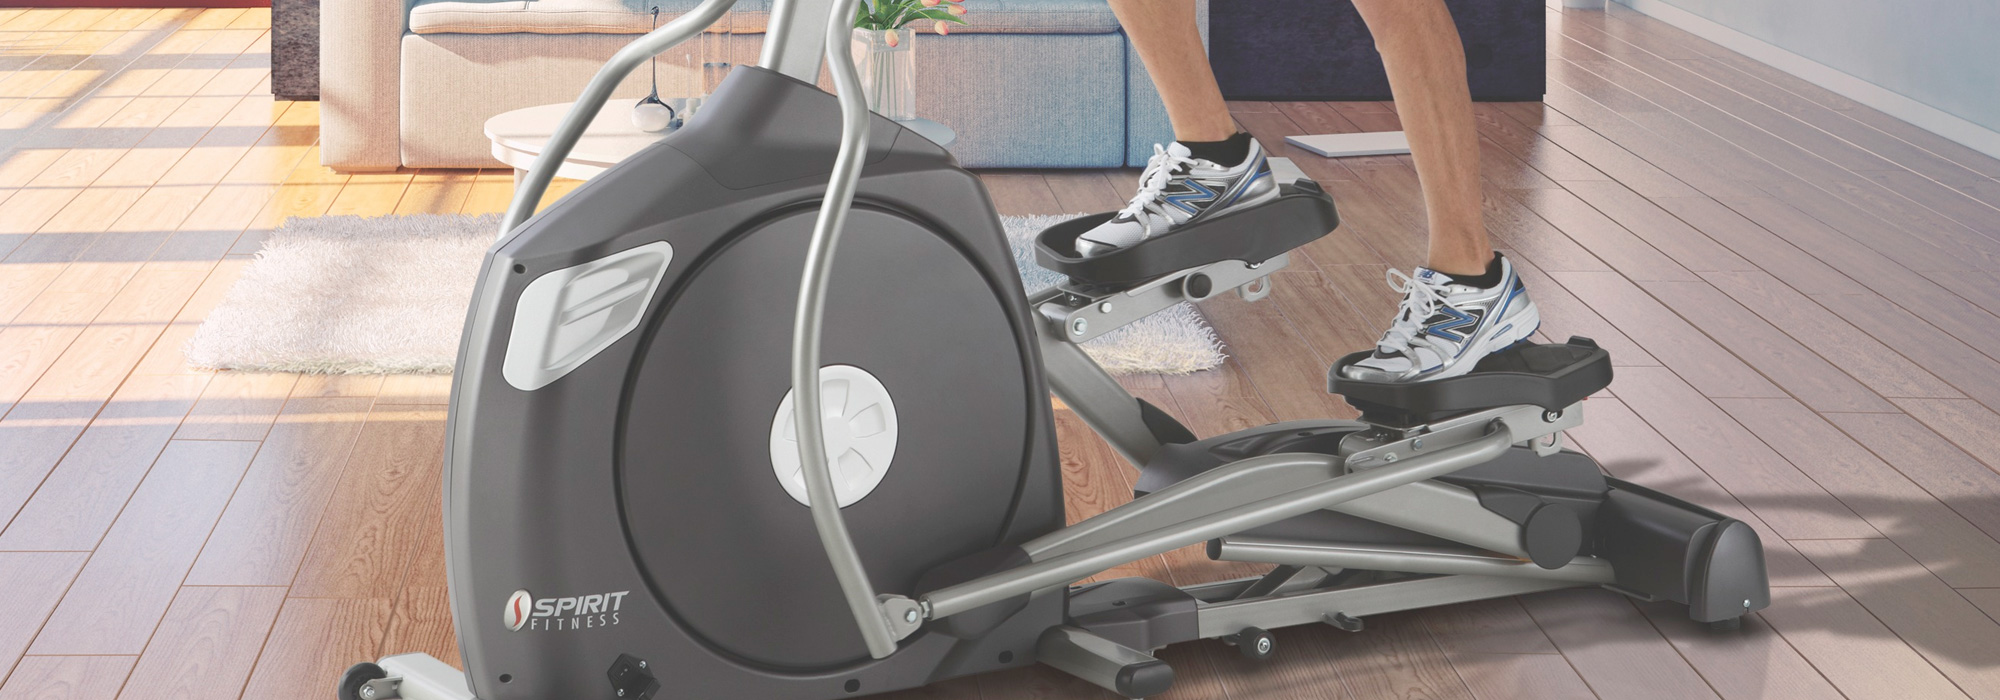 Spirit Fitness Ellipticals